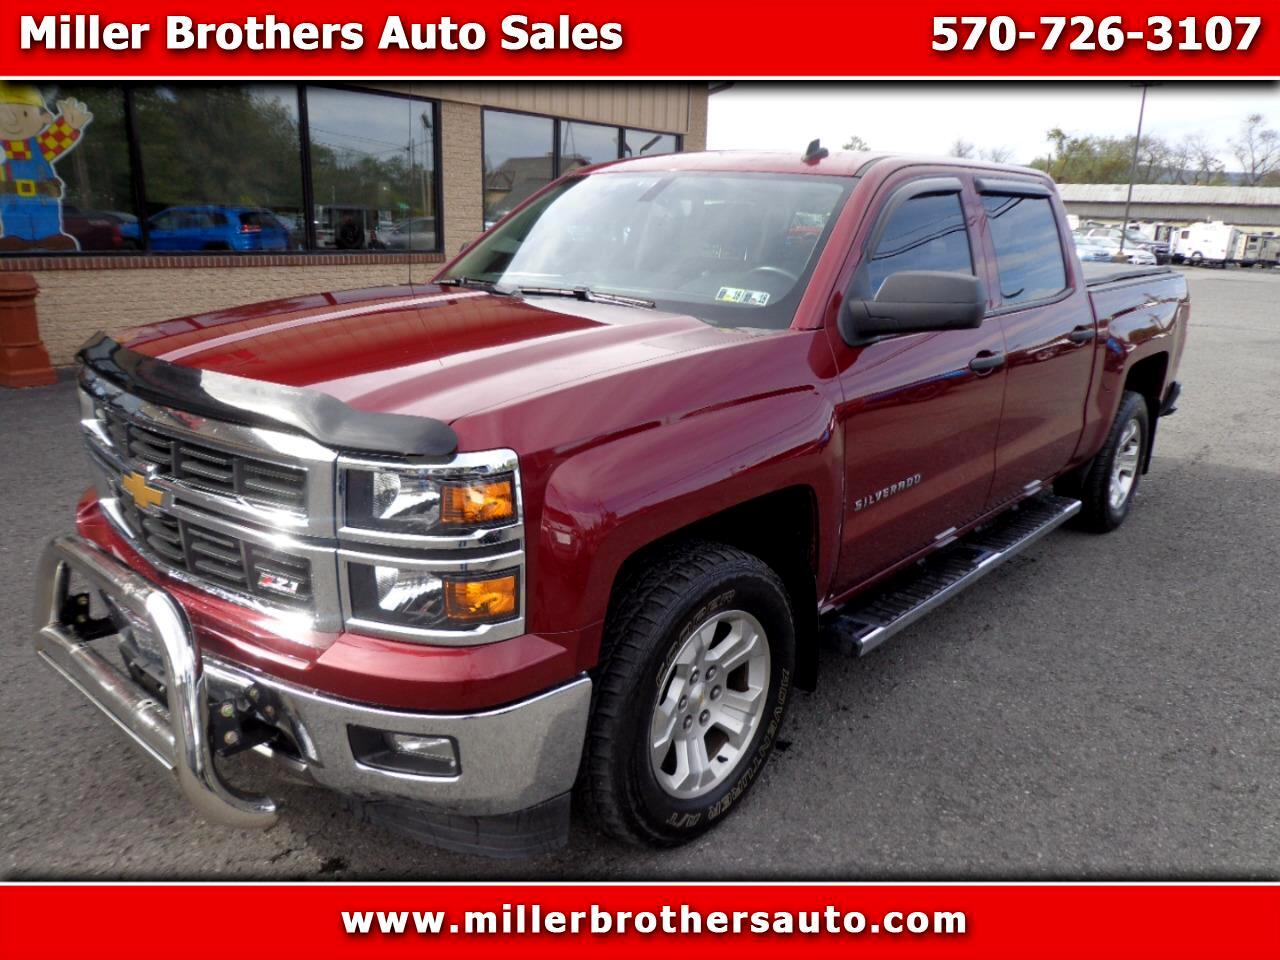 Used Cars For Sale Mill Hall Pa 17751 Miller Brothers Auto Sales 1976 Chevrolet Crew Cab 2014 Silverado 1500 1lt 4wd